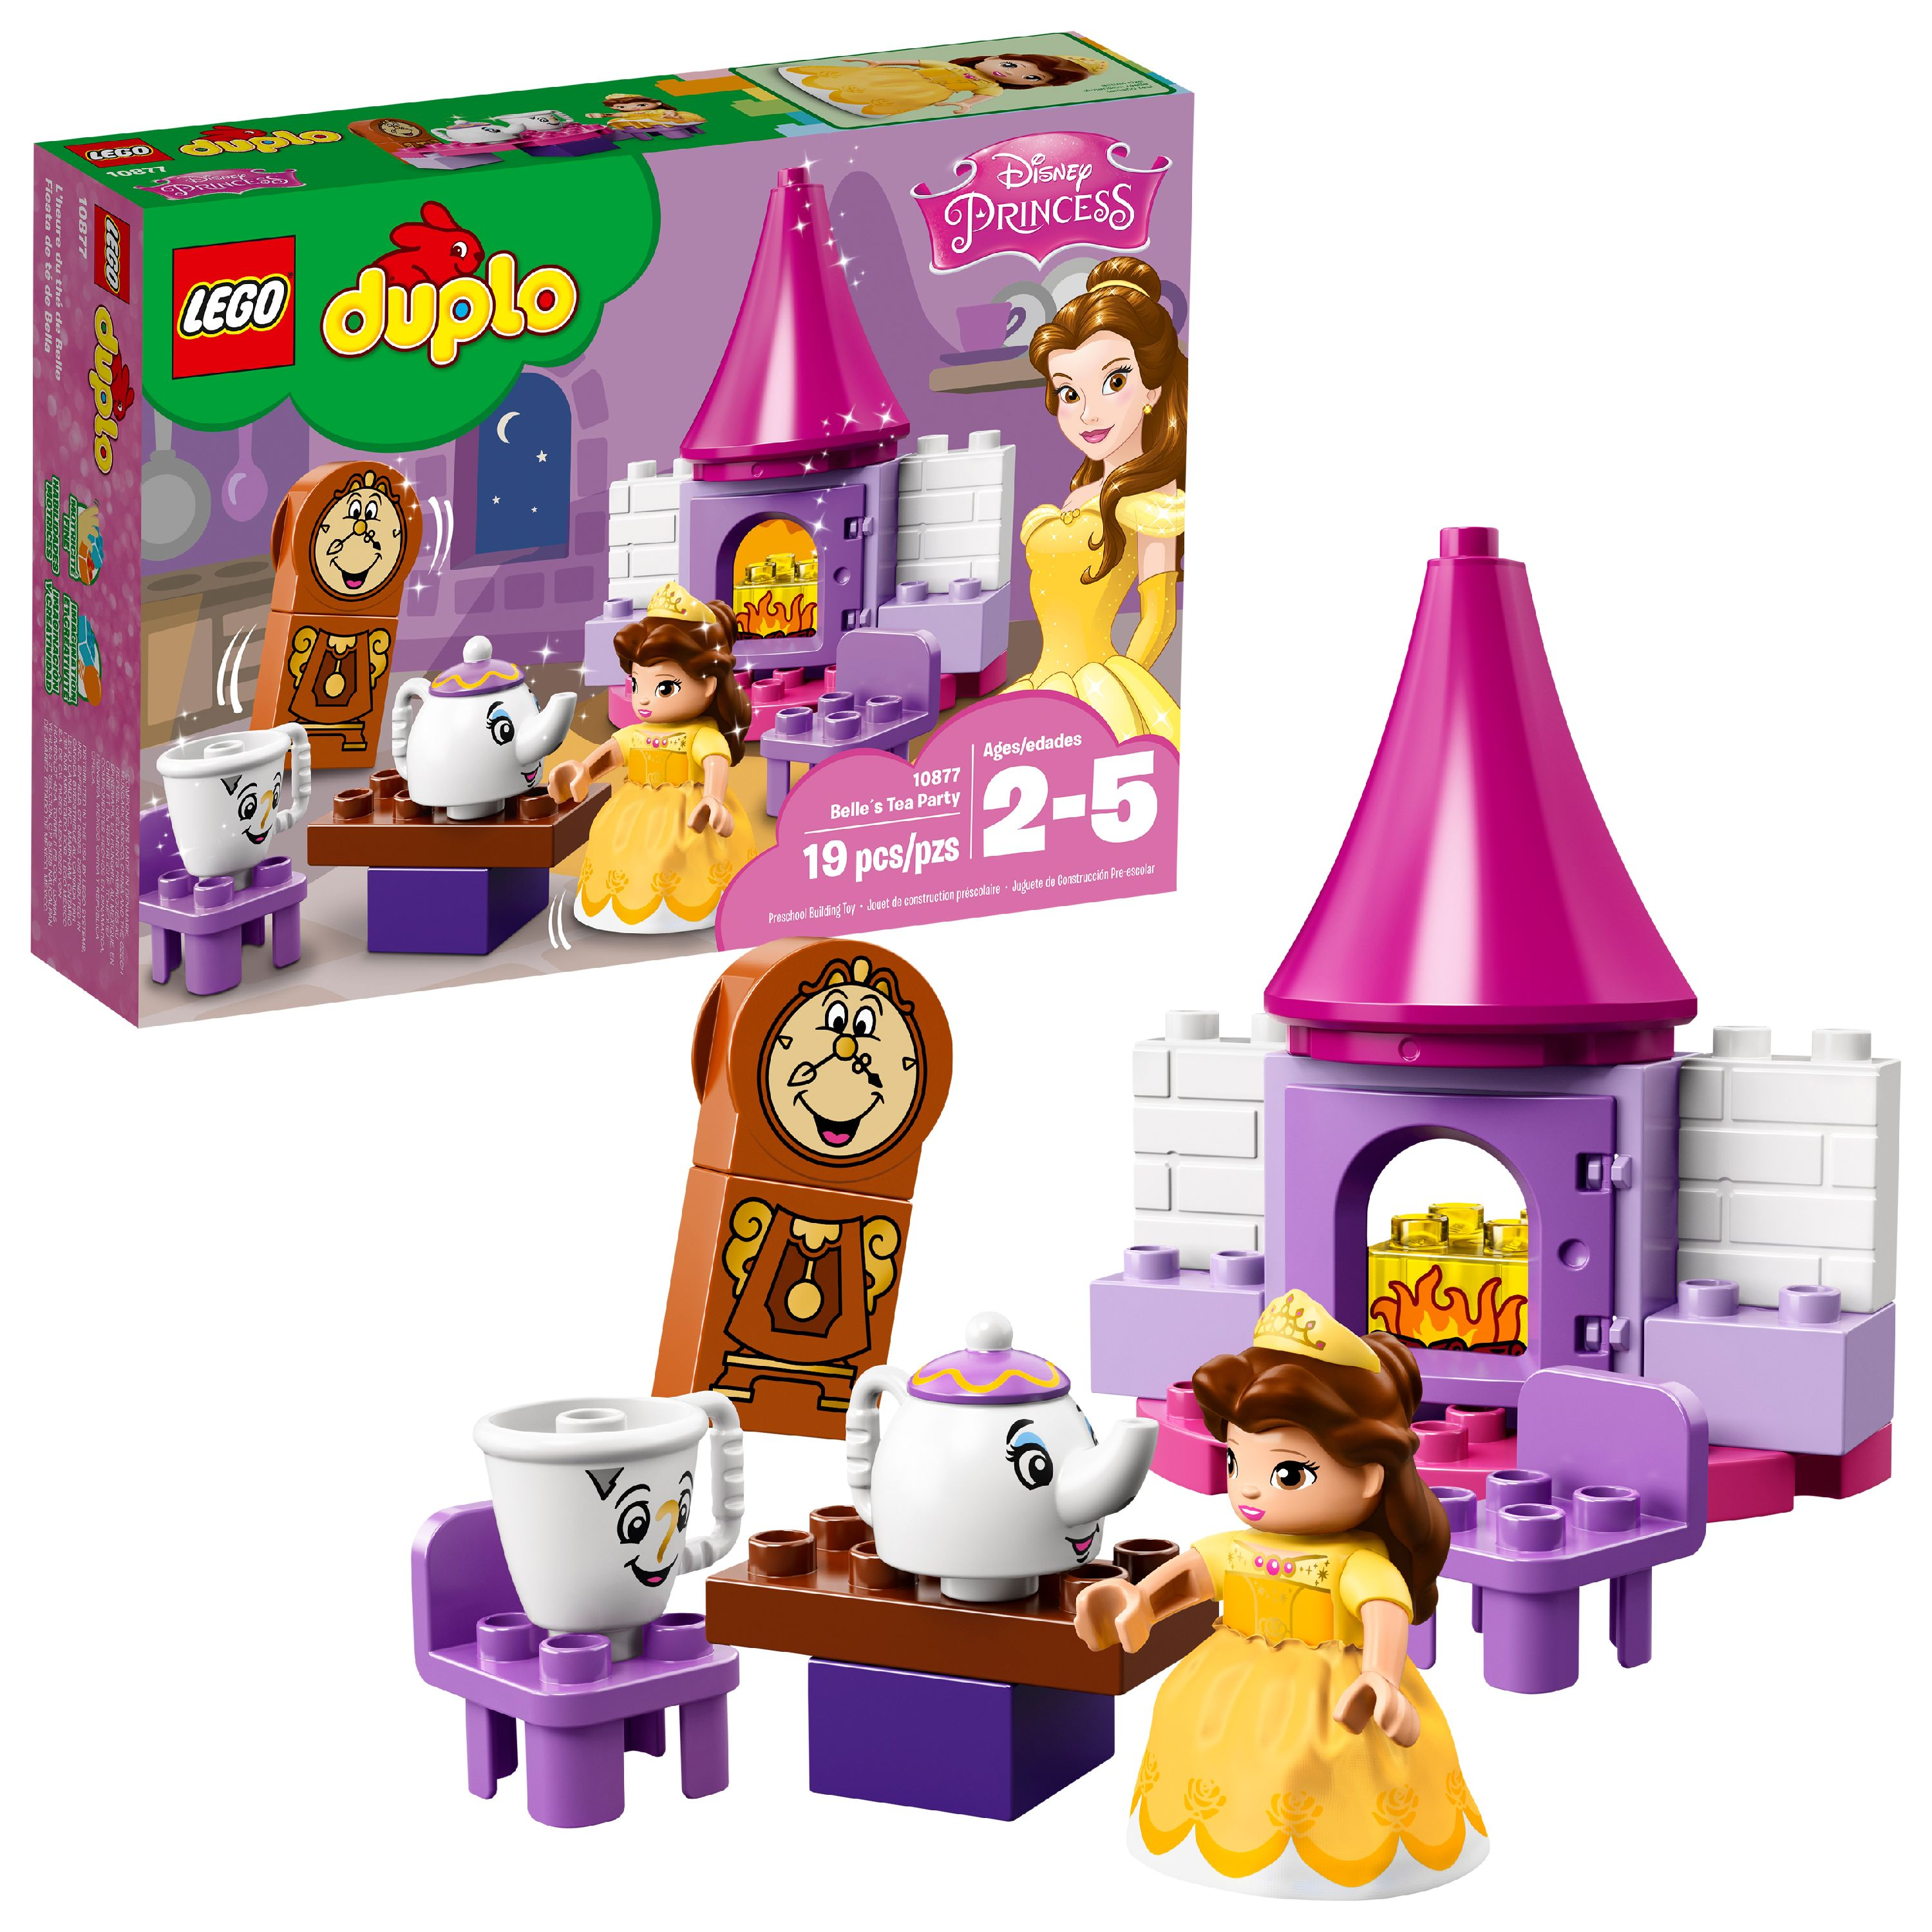 LEGO DUPLO Princess Belle´s Tea Party 10877 (19 Pieces)